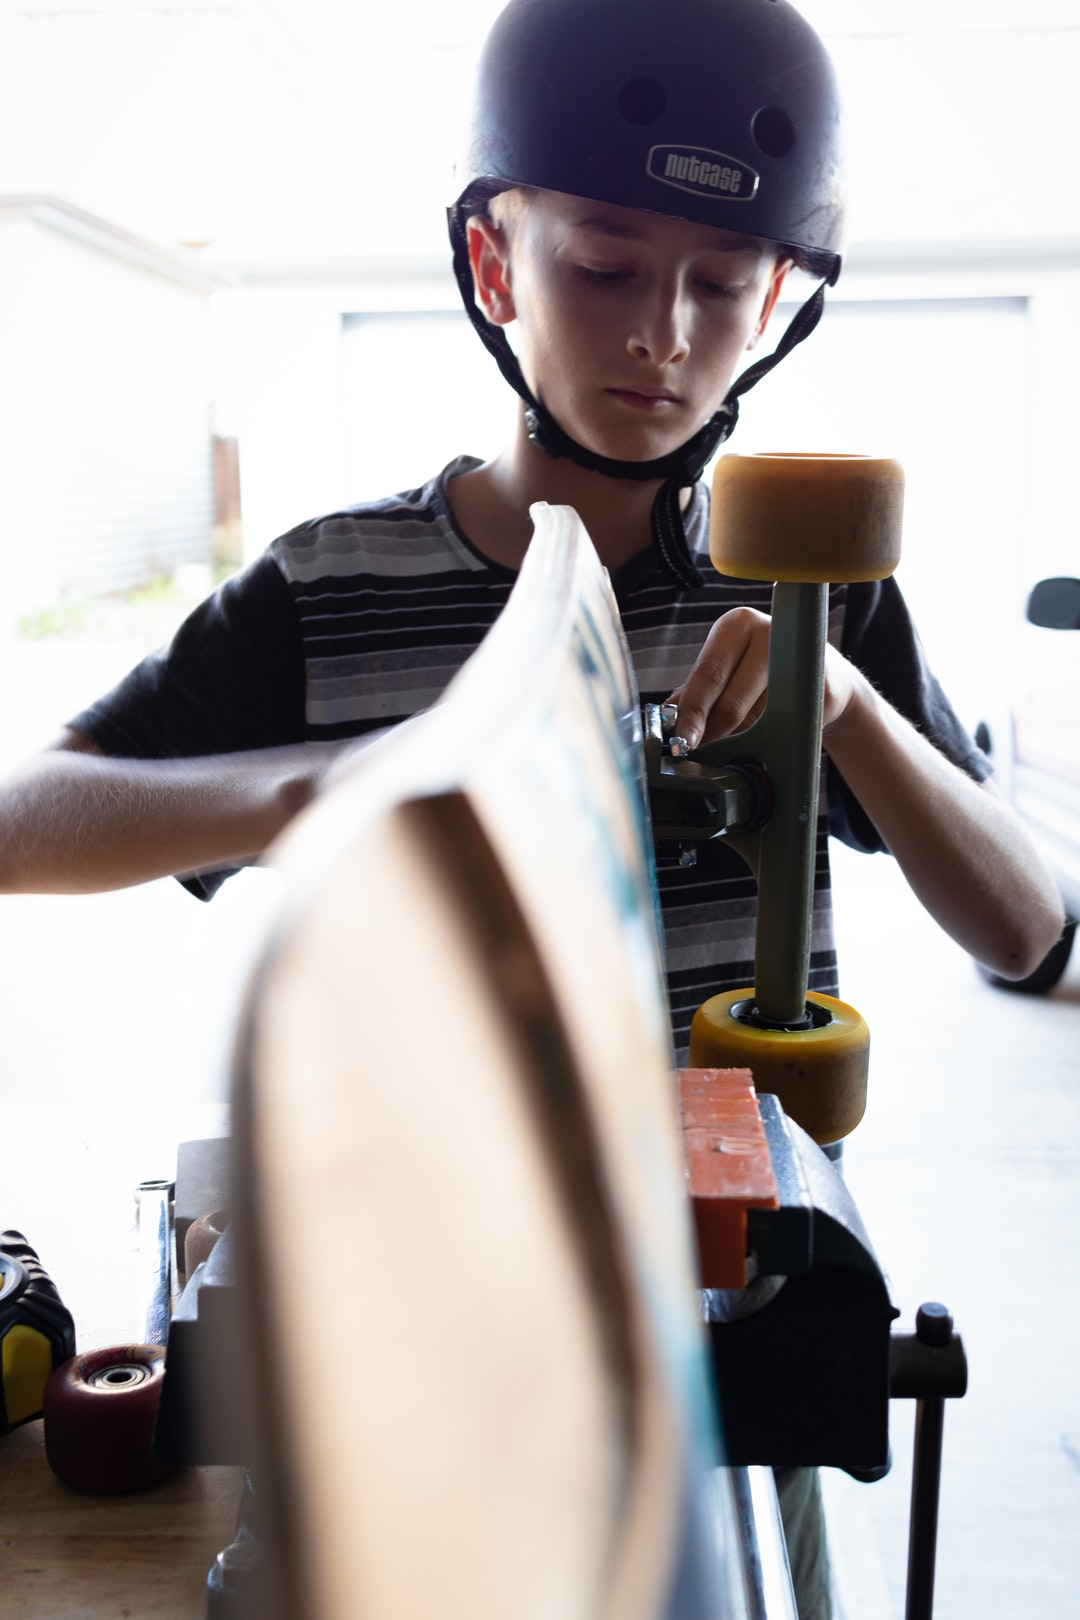 boy fixing skateboard with tools